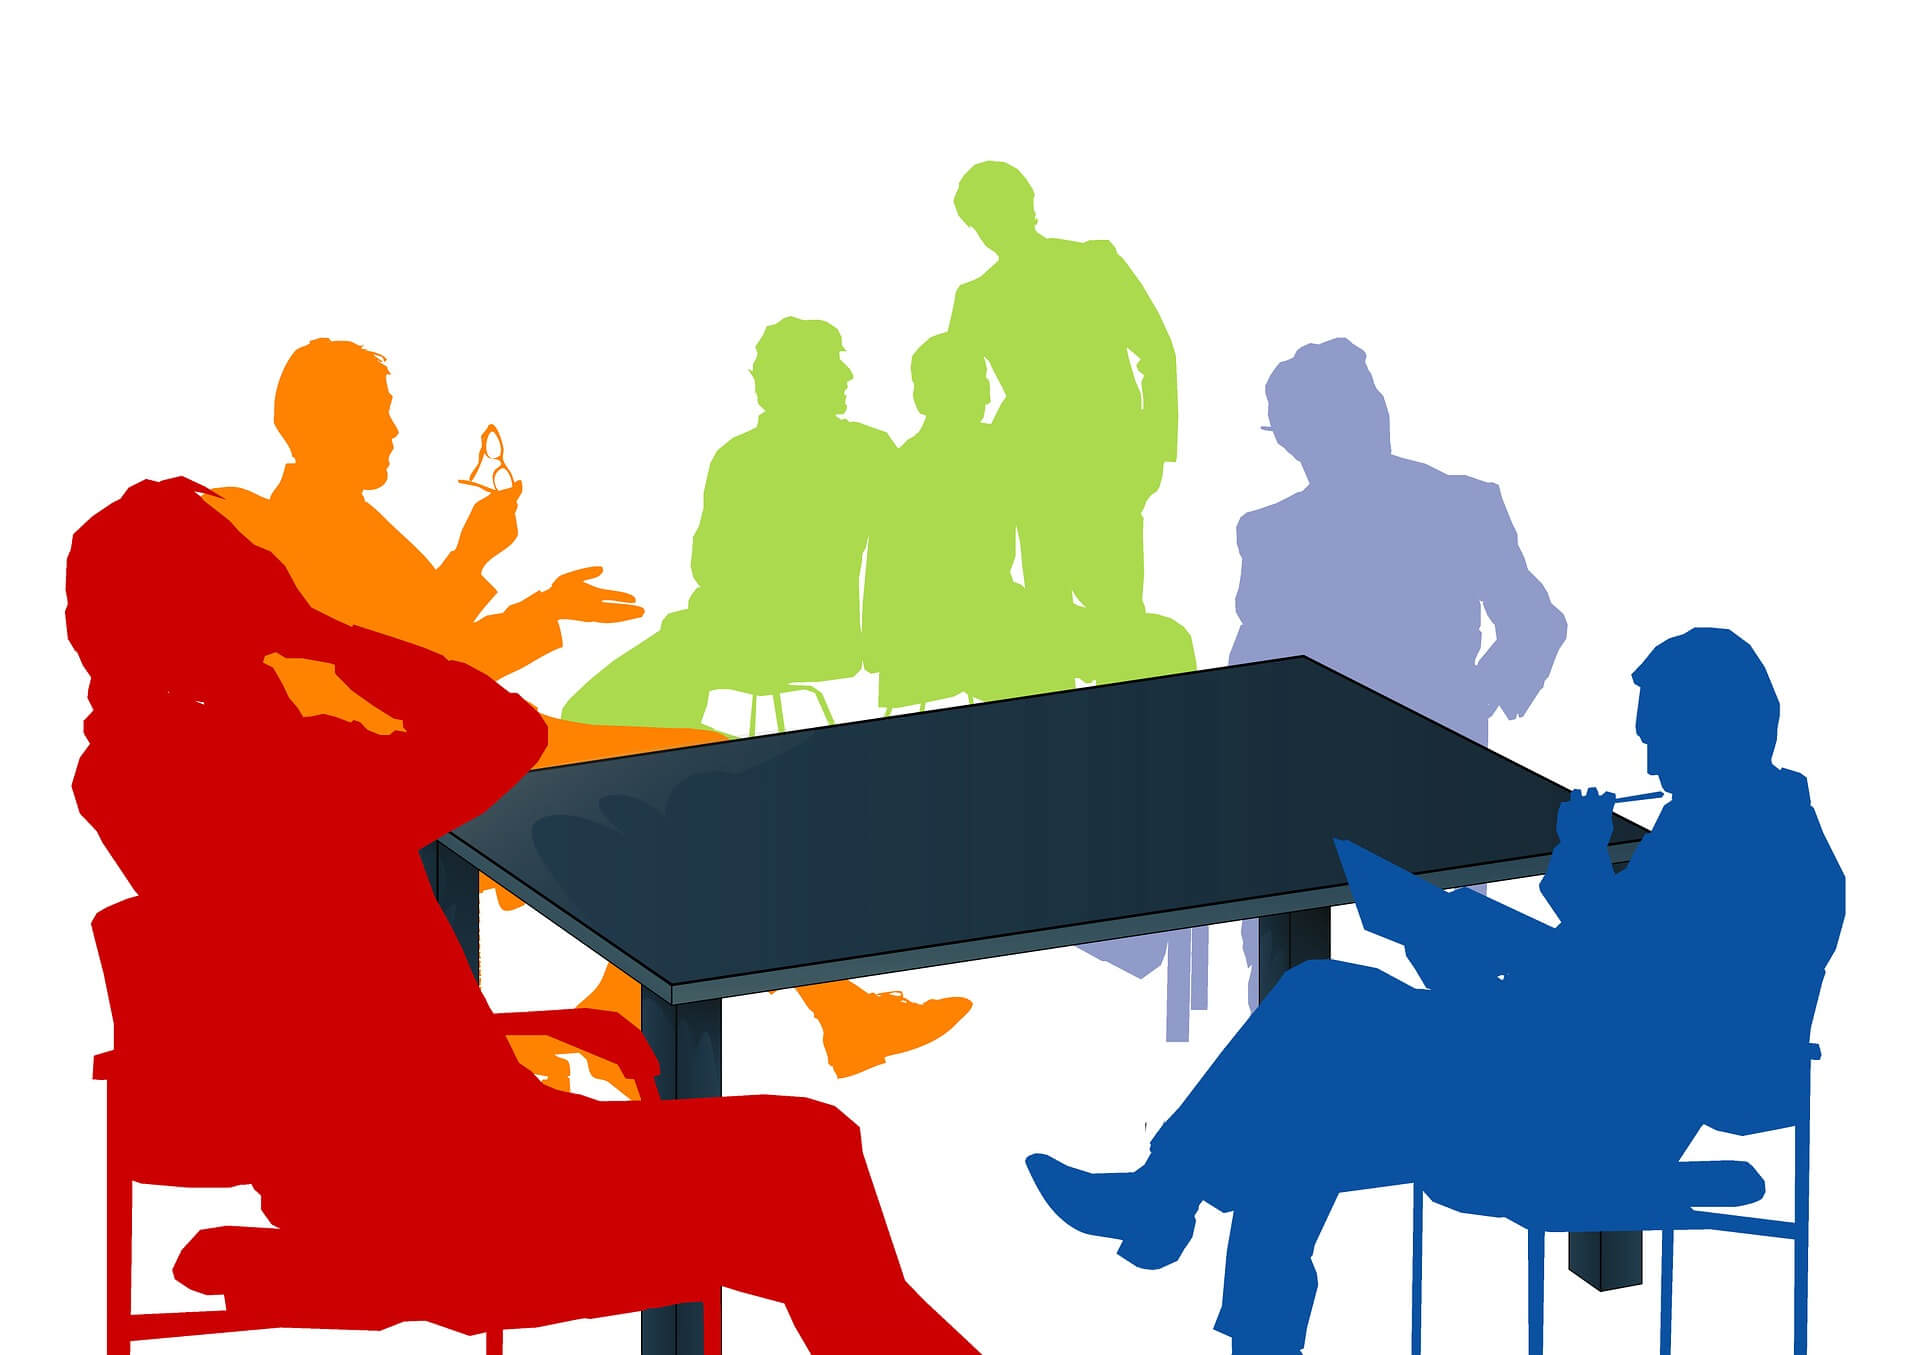 Silhouette of people around a desk